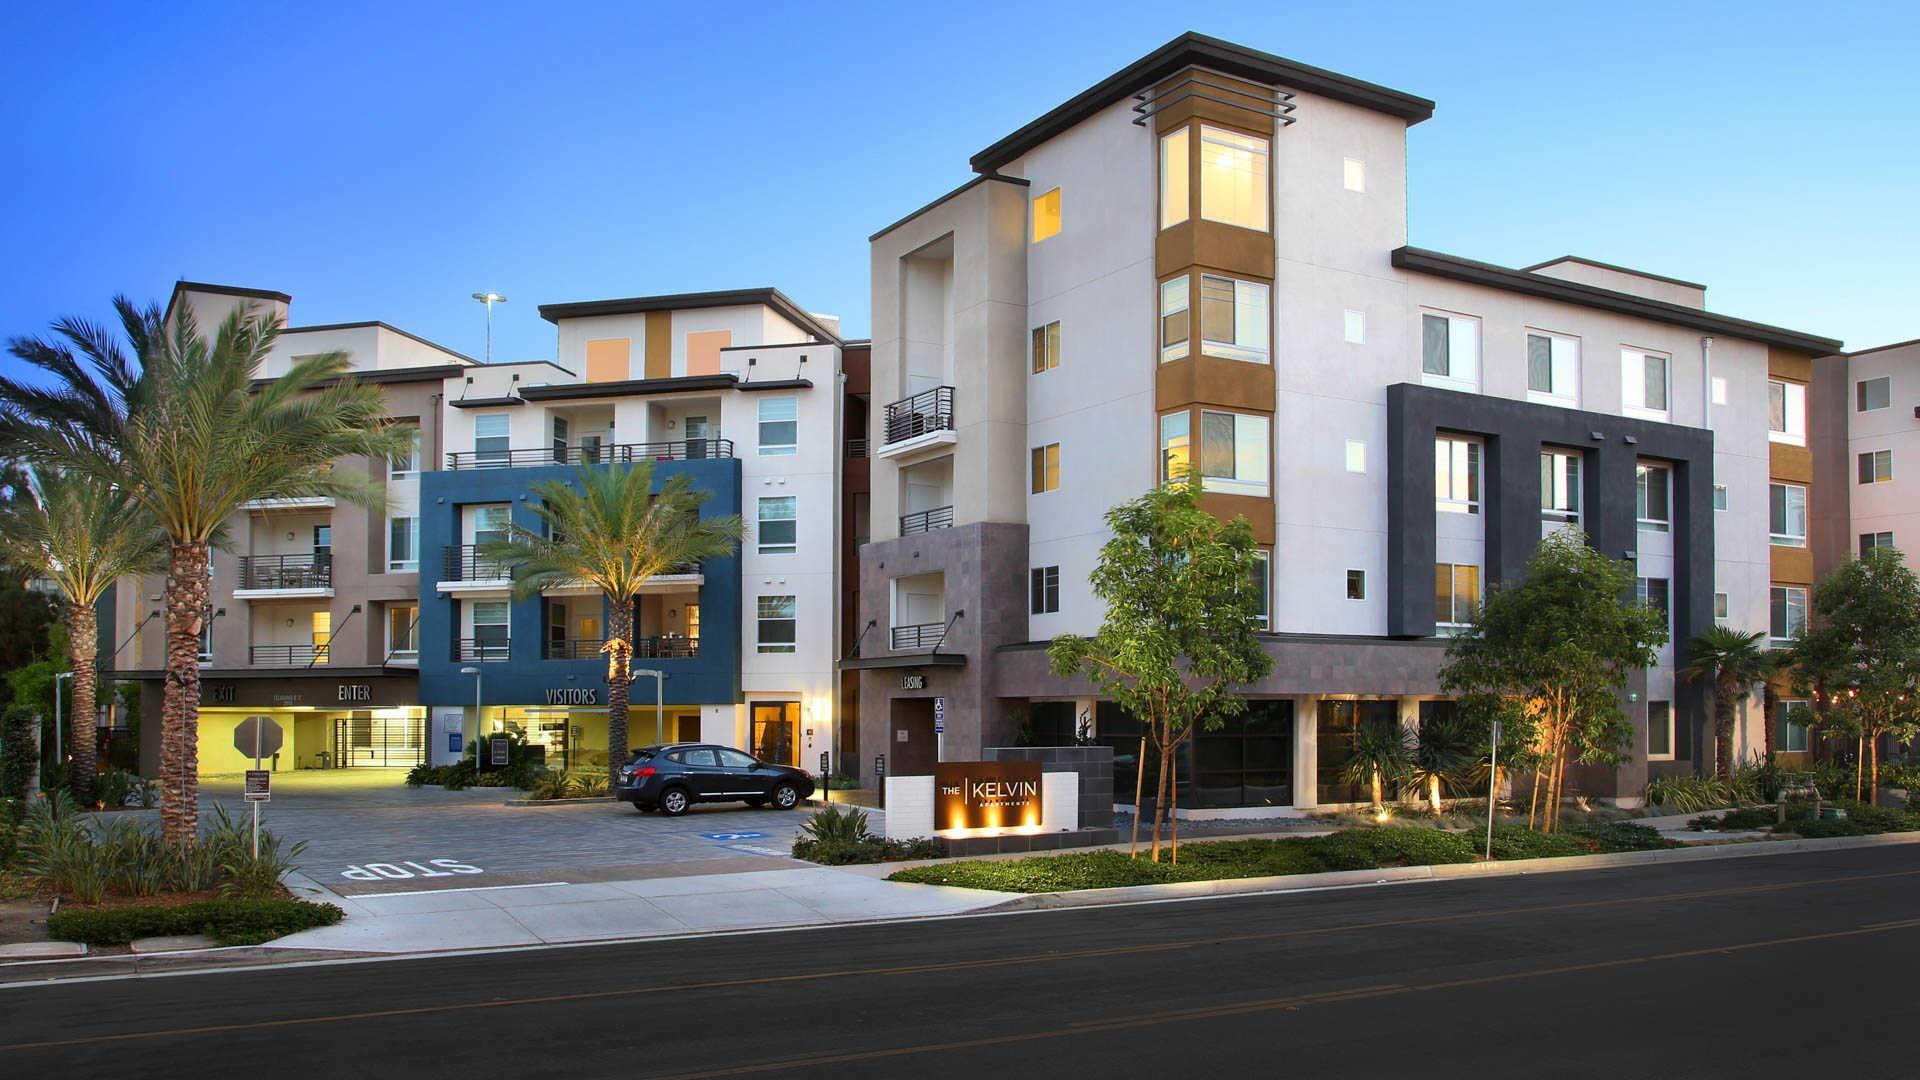 Apartments To Rent In Irvine Ca